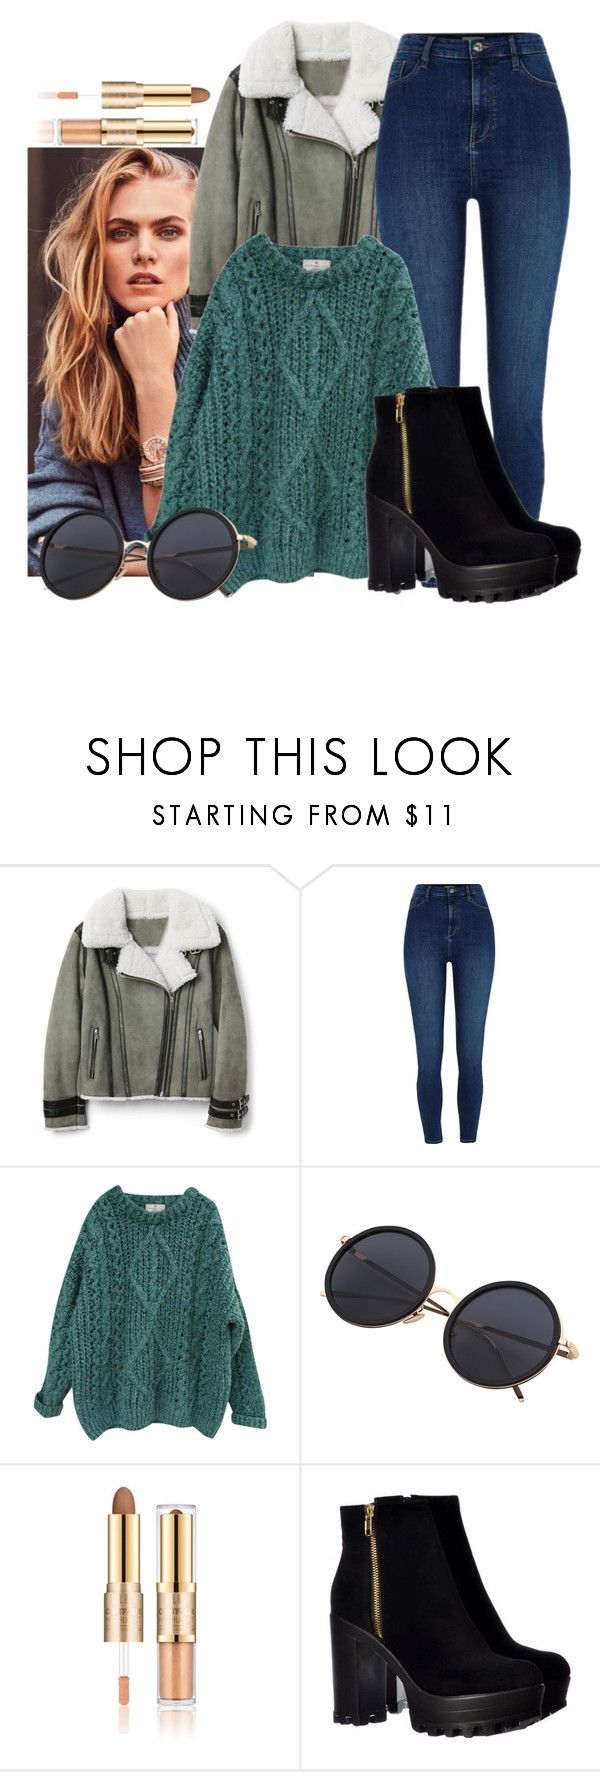 """""""winter look"""" by iandcheshirecat ❤ liked on Polyvore featuring Rampage, River Island, Essentiel, outfit, look, Trendy and trend"""